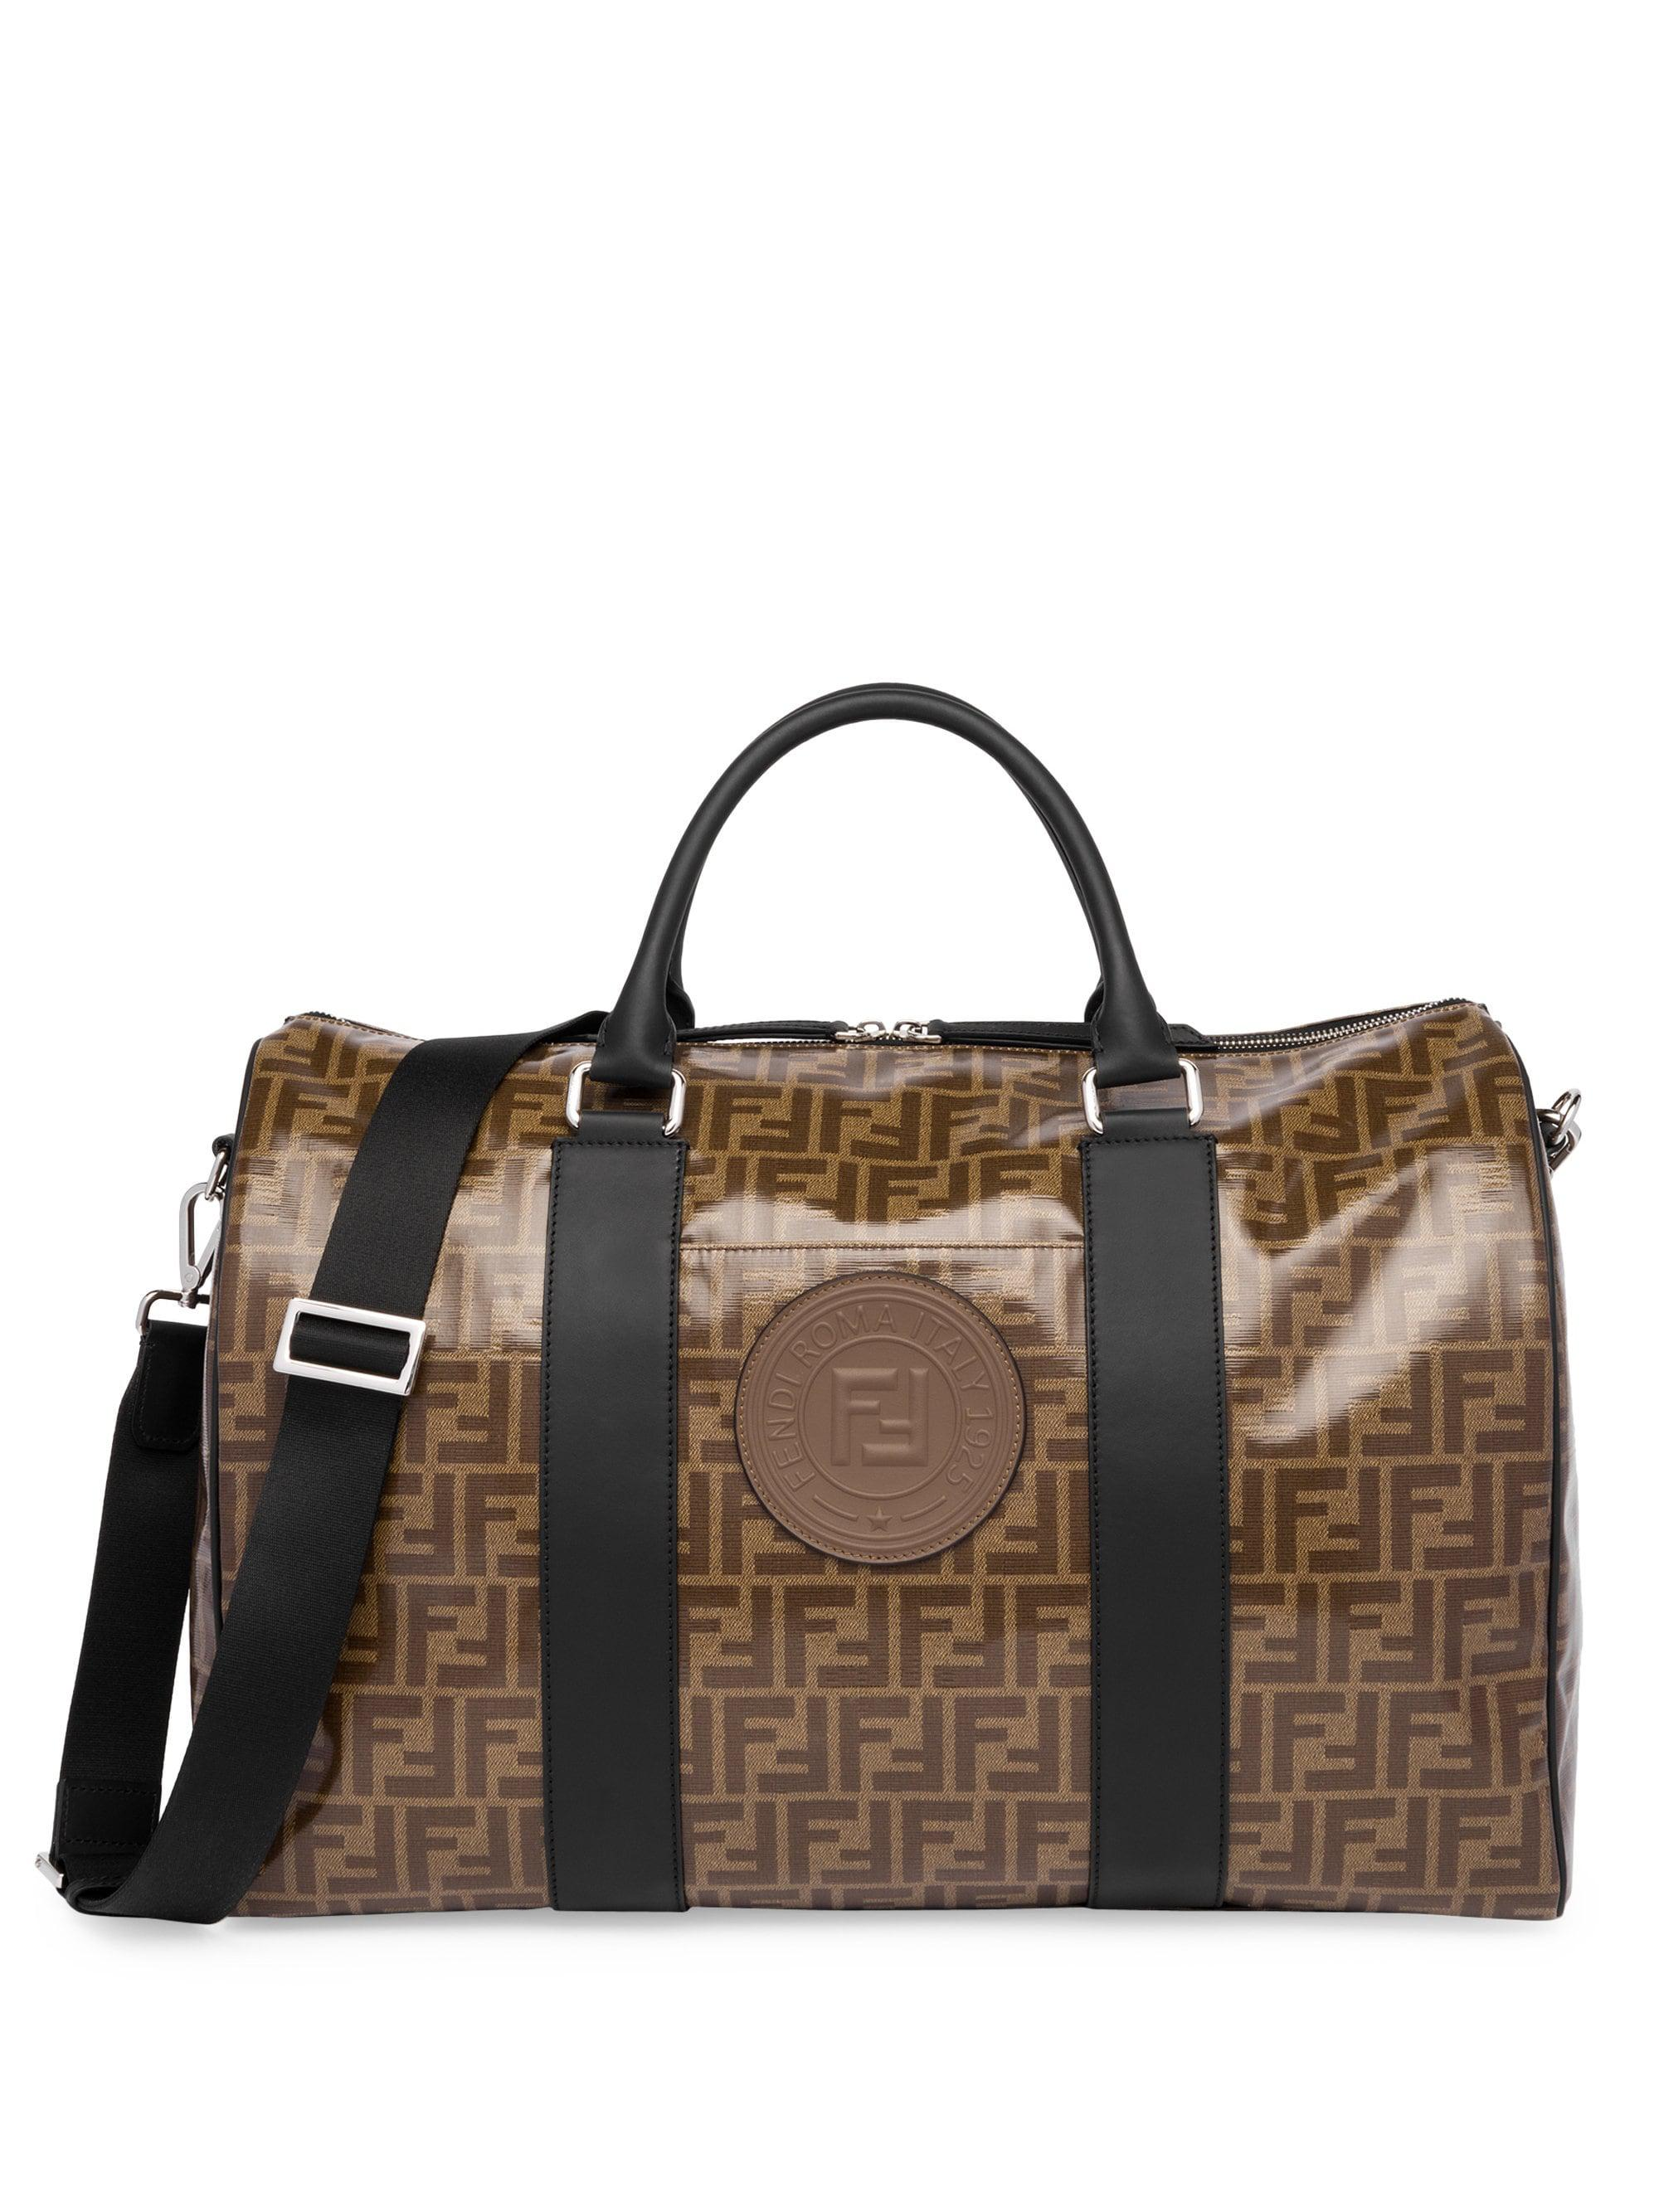 7a34e39afb01 Lyst - Fendi Ff Vetrificato Print Duffle Bag in Brown for Men